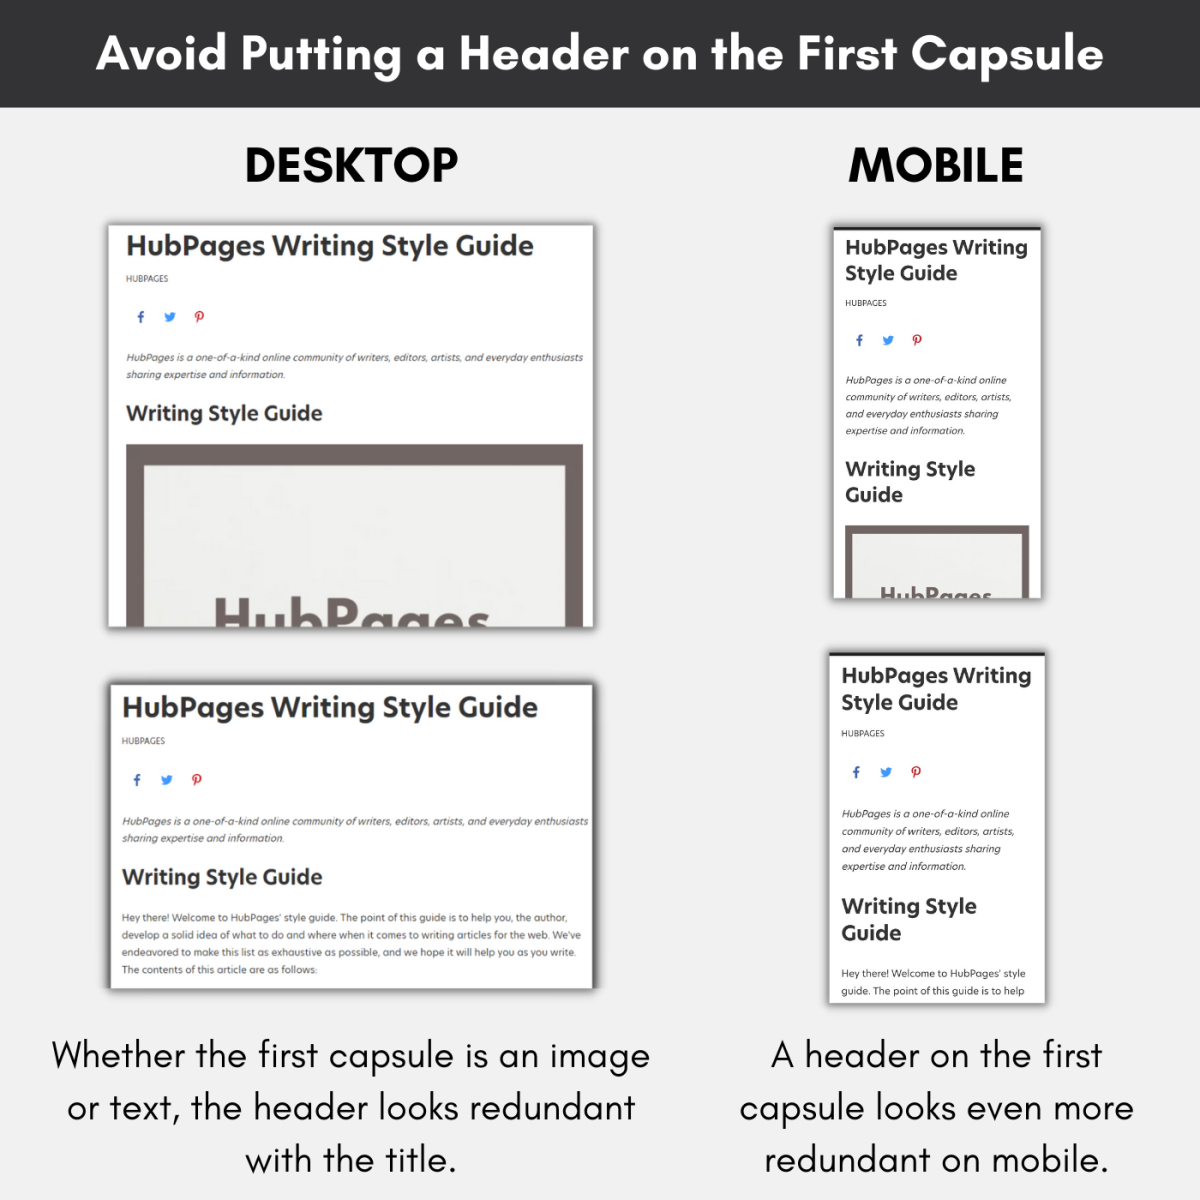 Putting a header on the very first capsule of your article looks redundant with the title.